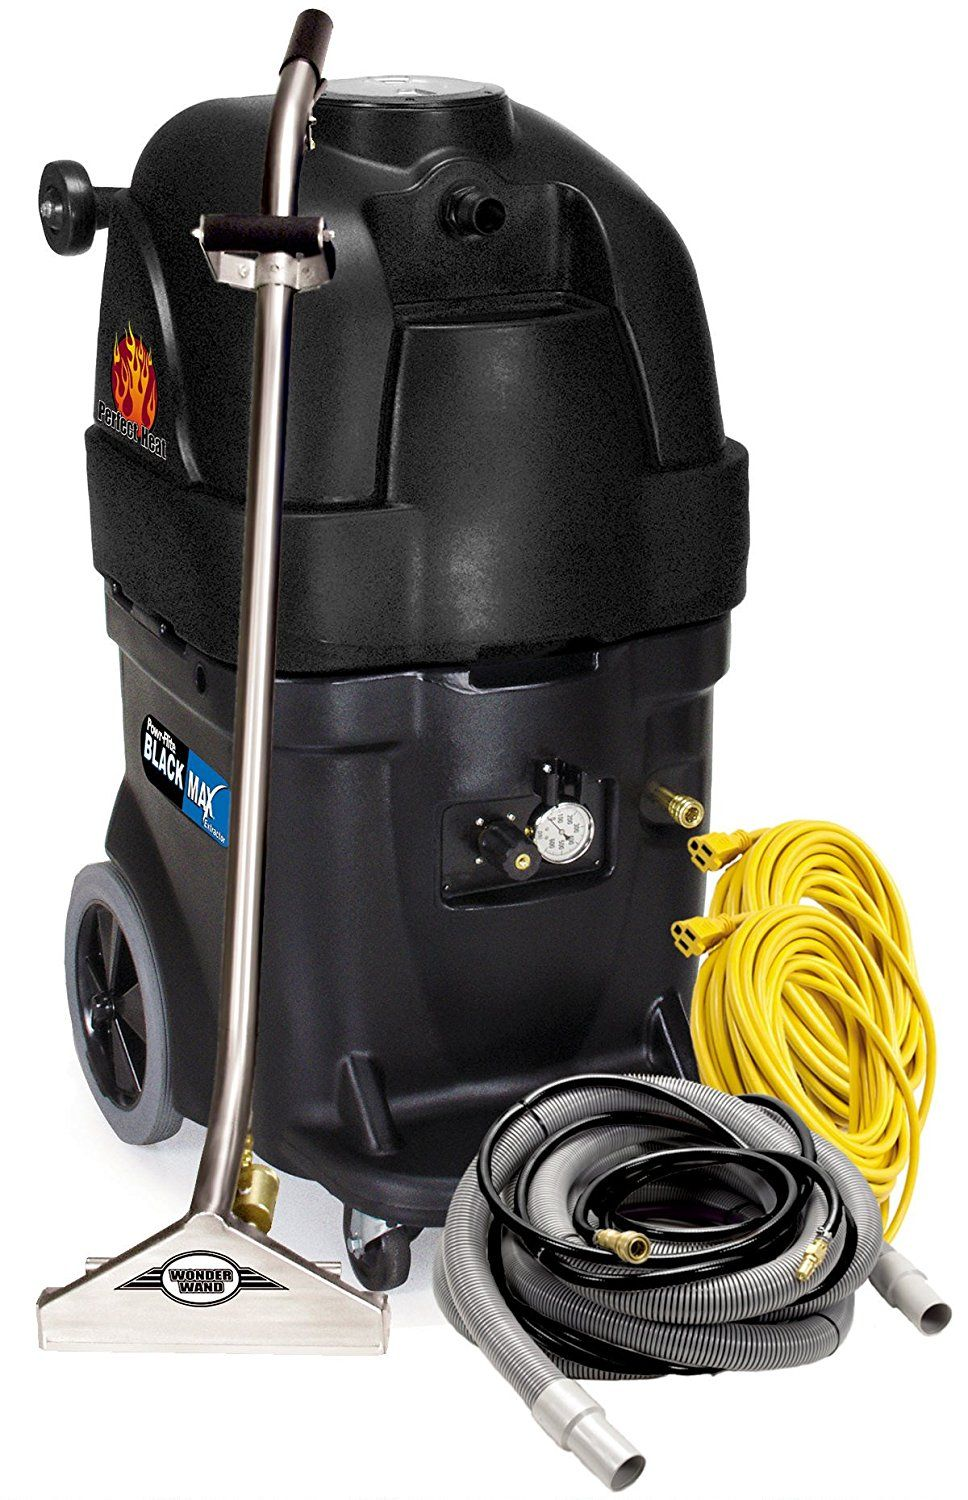 Carpet mytee tempo heated carpet and upholstery extractor